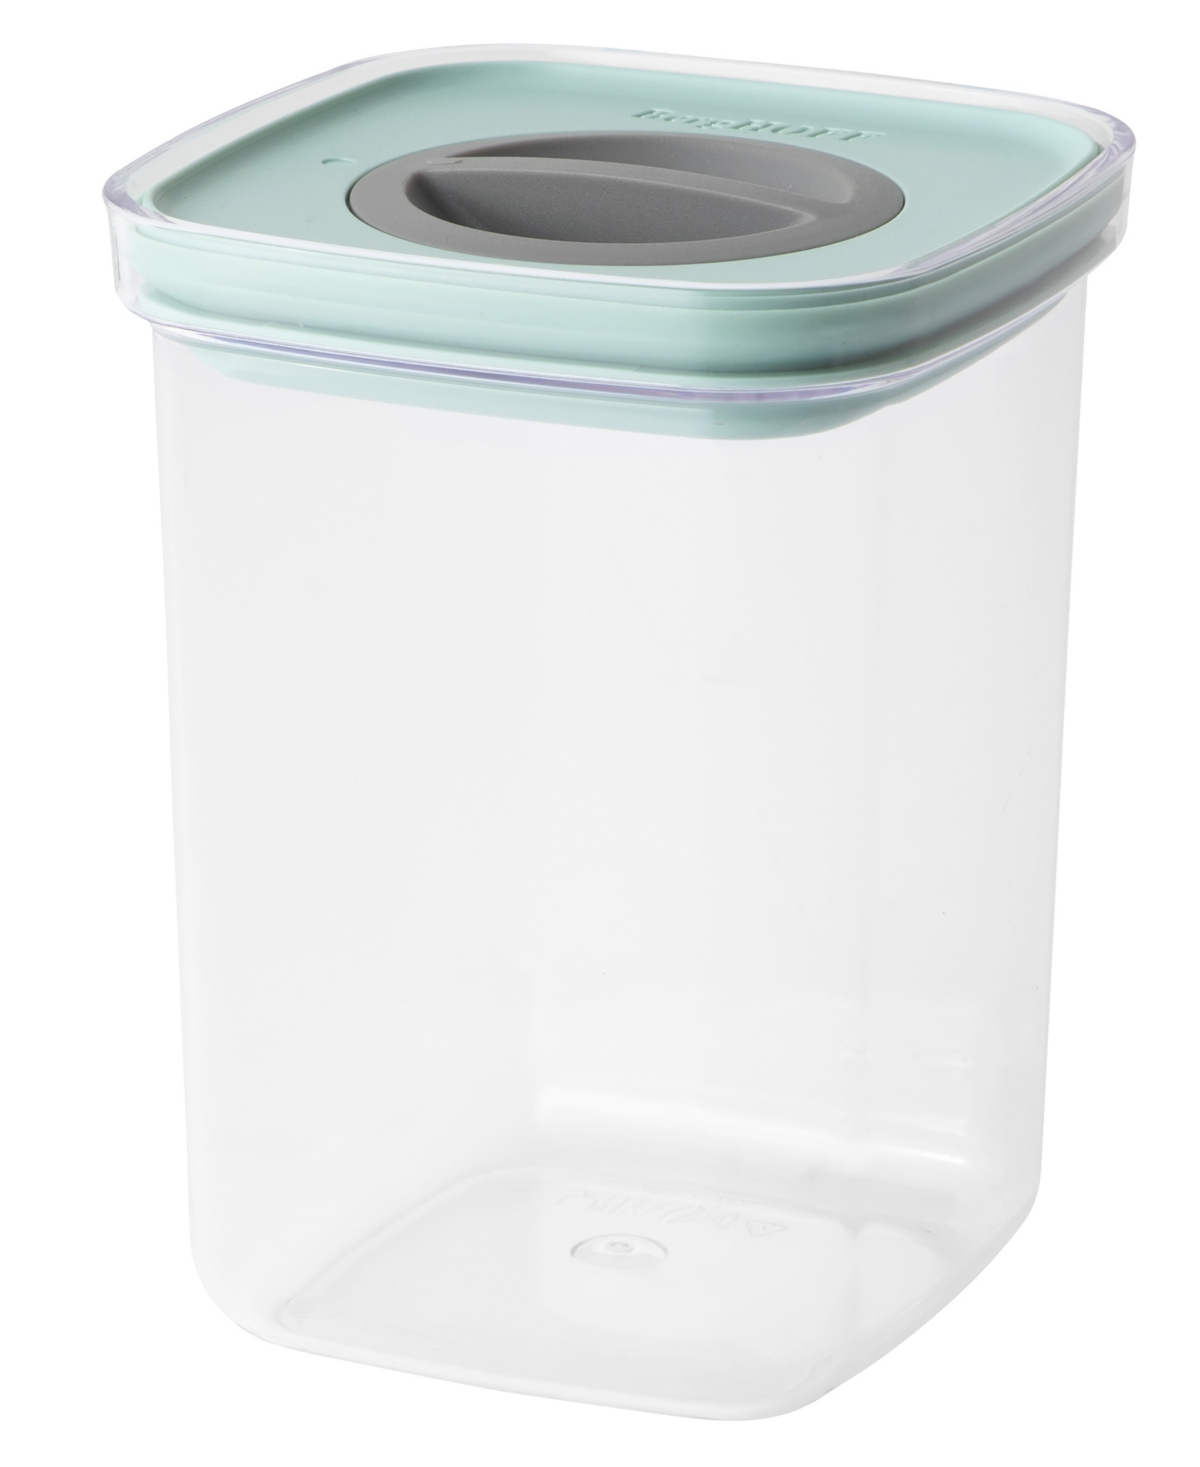 BergHOFF Leo Collection 1.1-Qt. Smart Seal Food Container